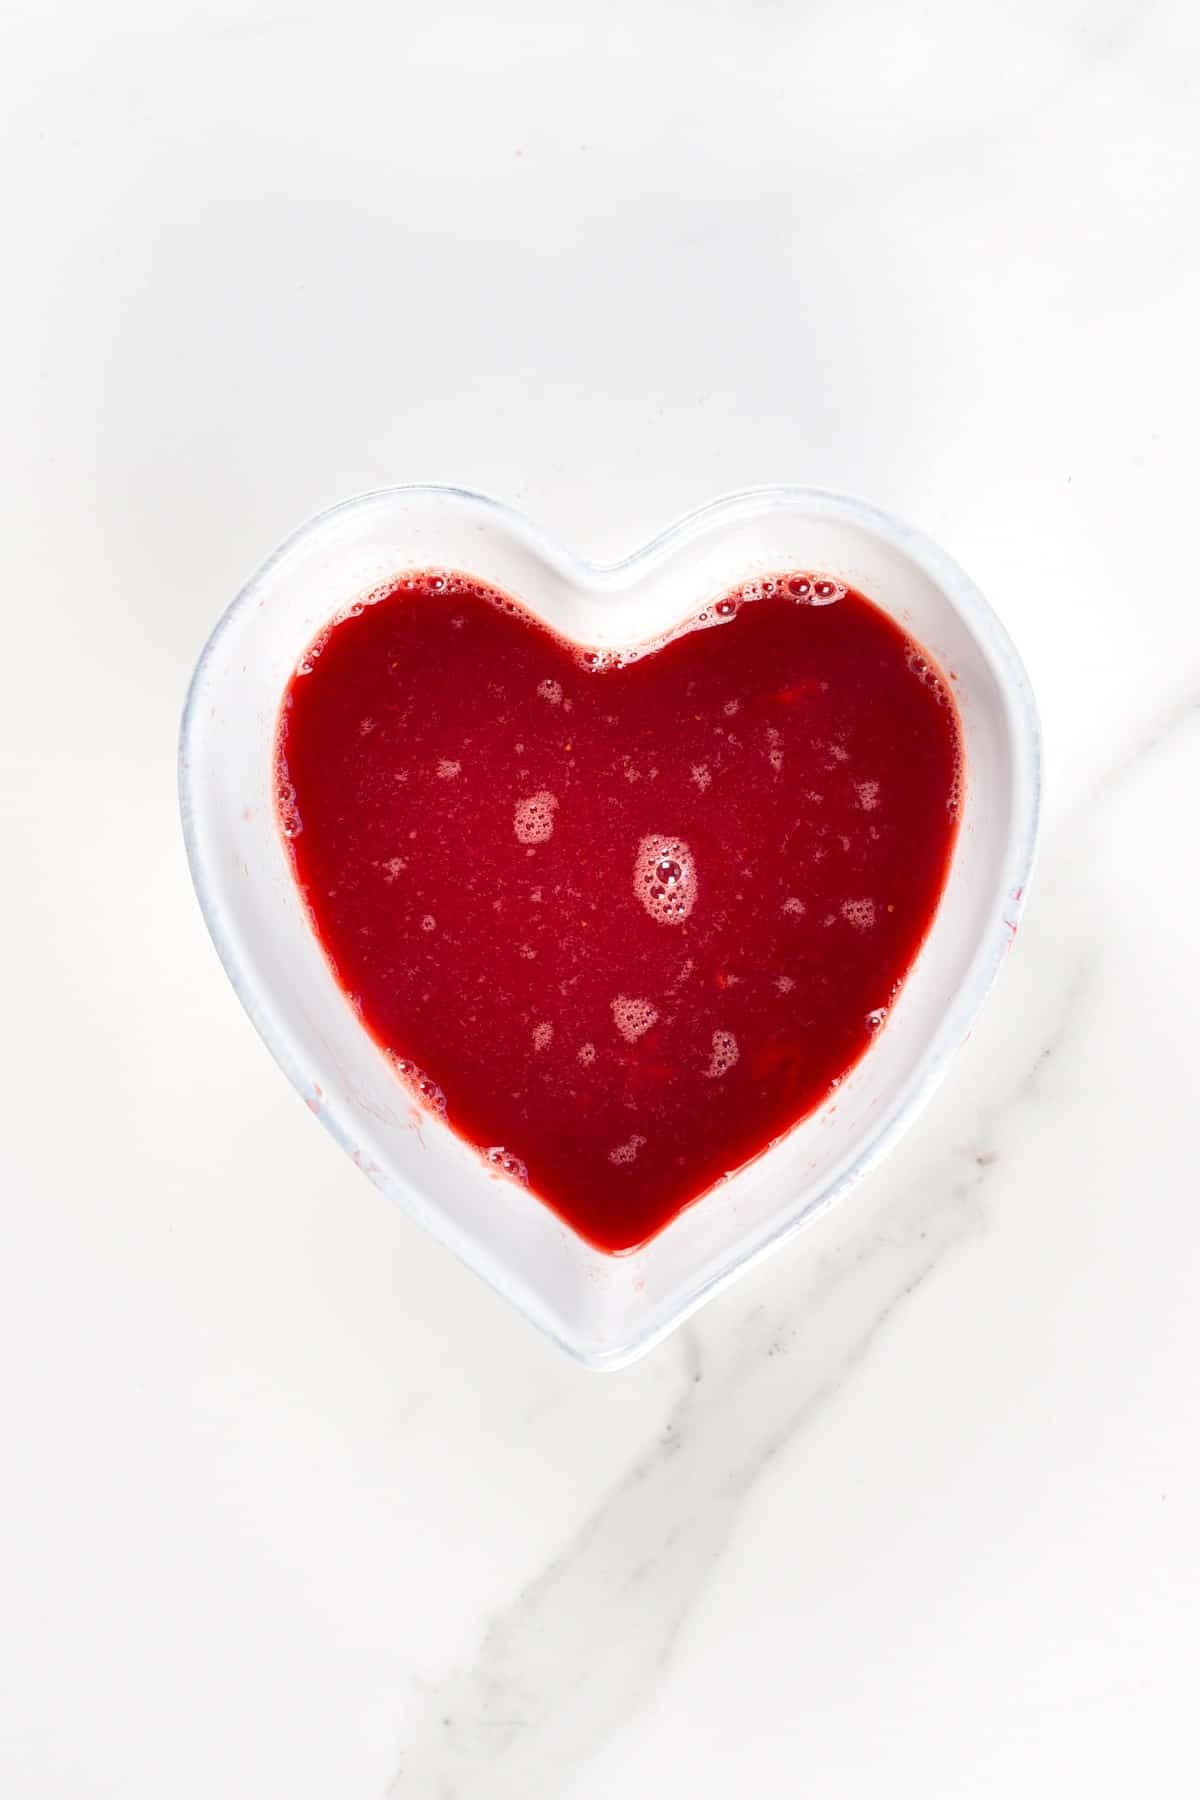 Strawberry syrup in a heart shaped bowl